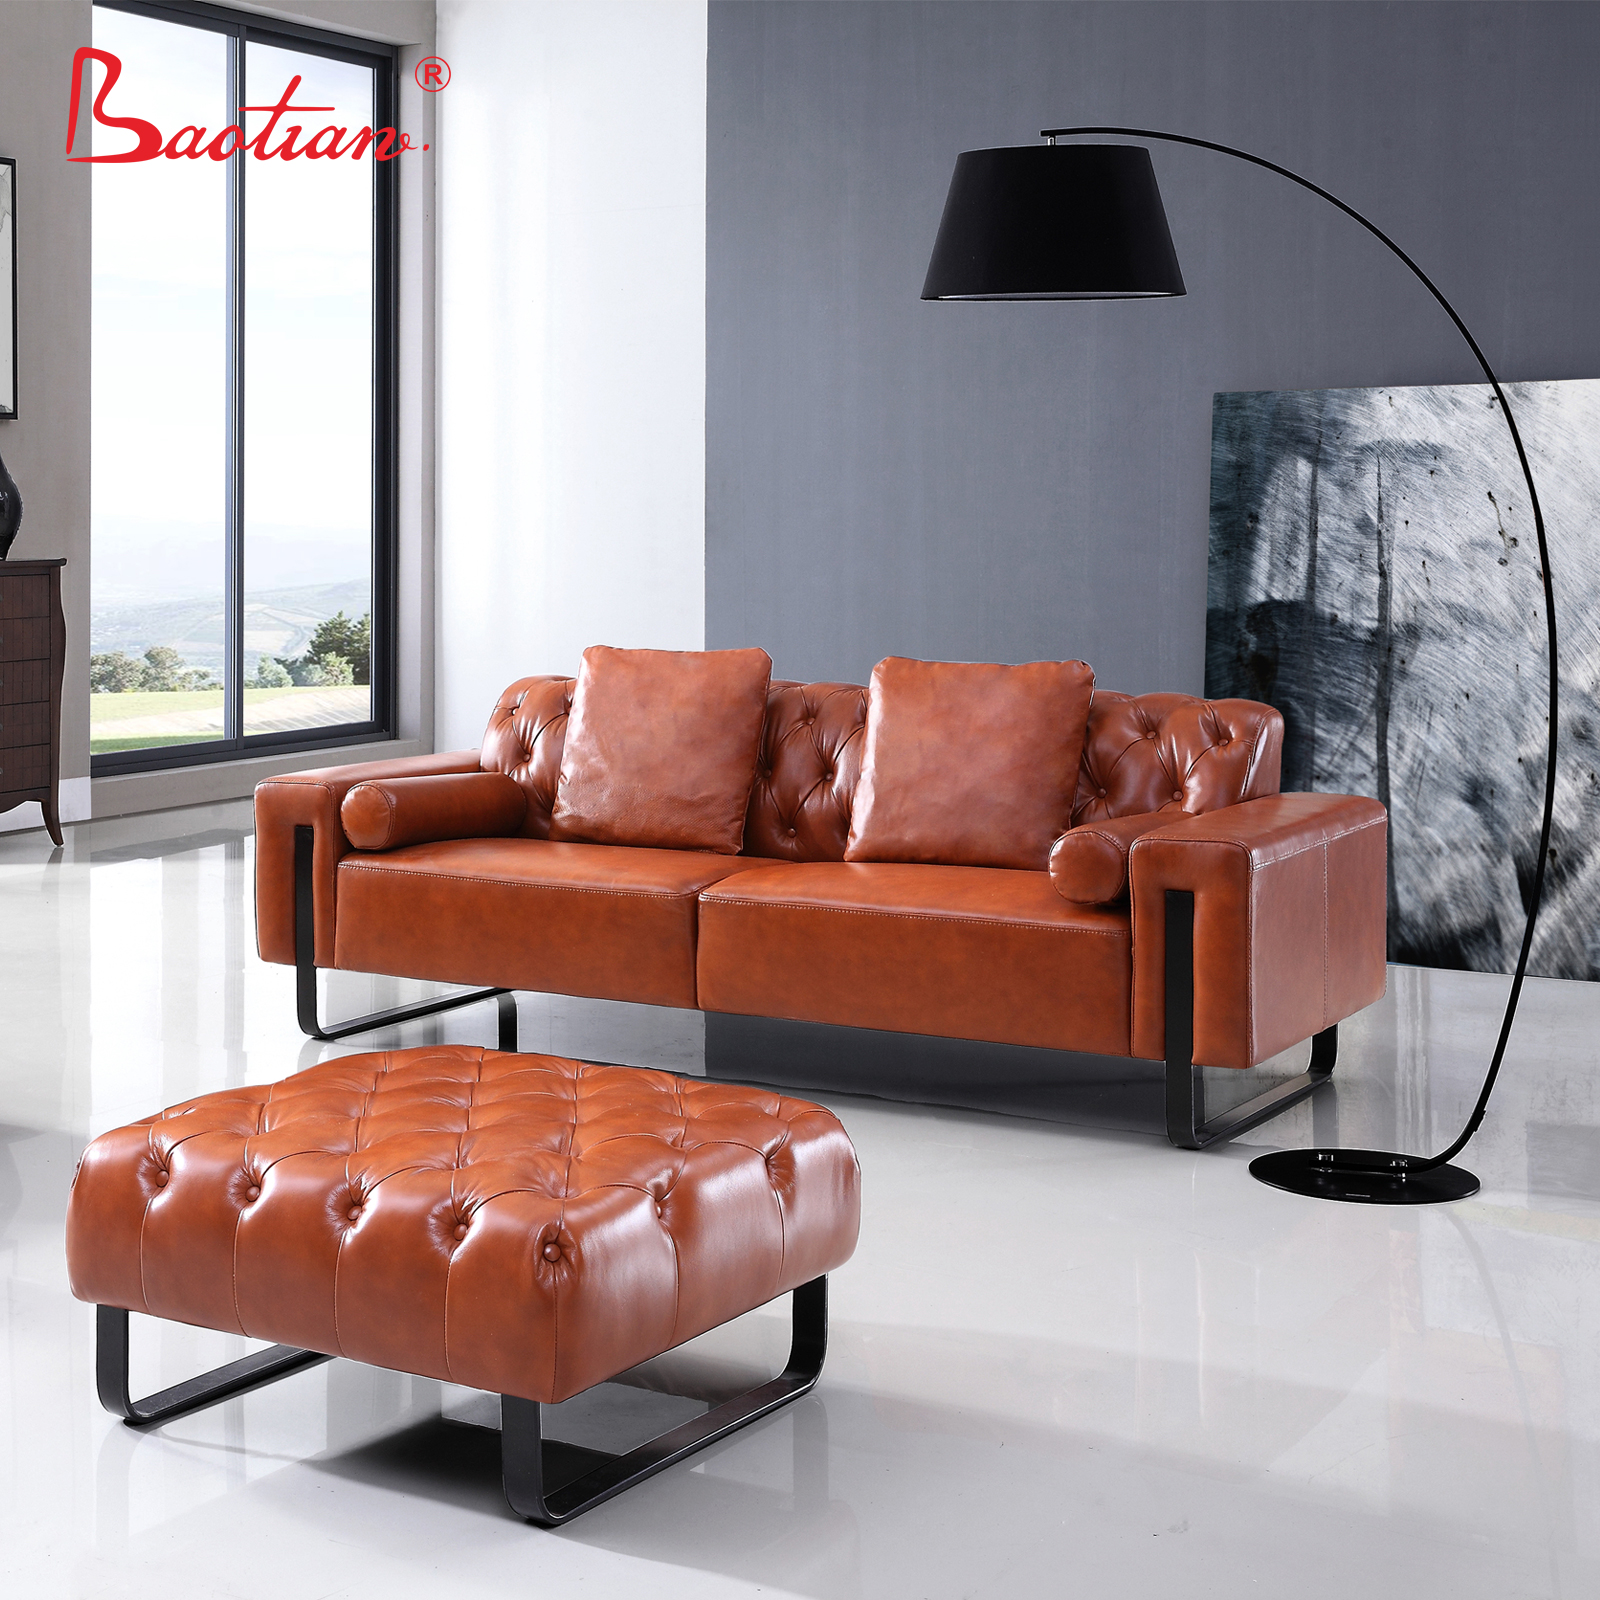 Comfortable recliner chair sofa luxury sofa set solid wood home furniture chair living room chair